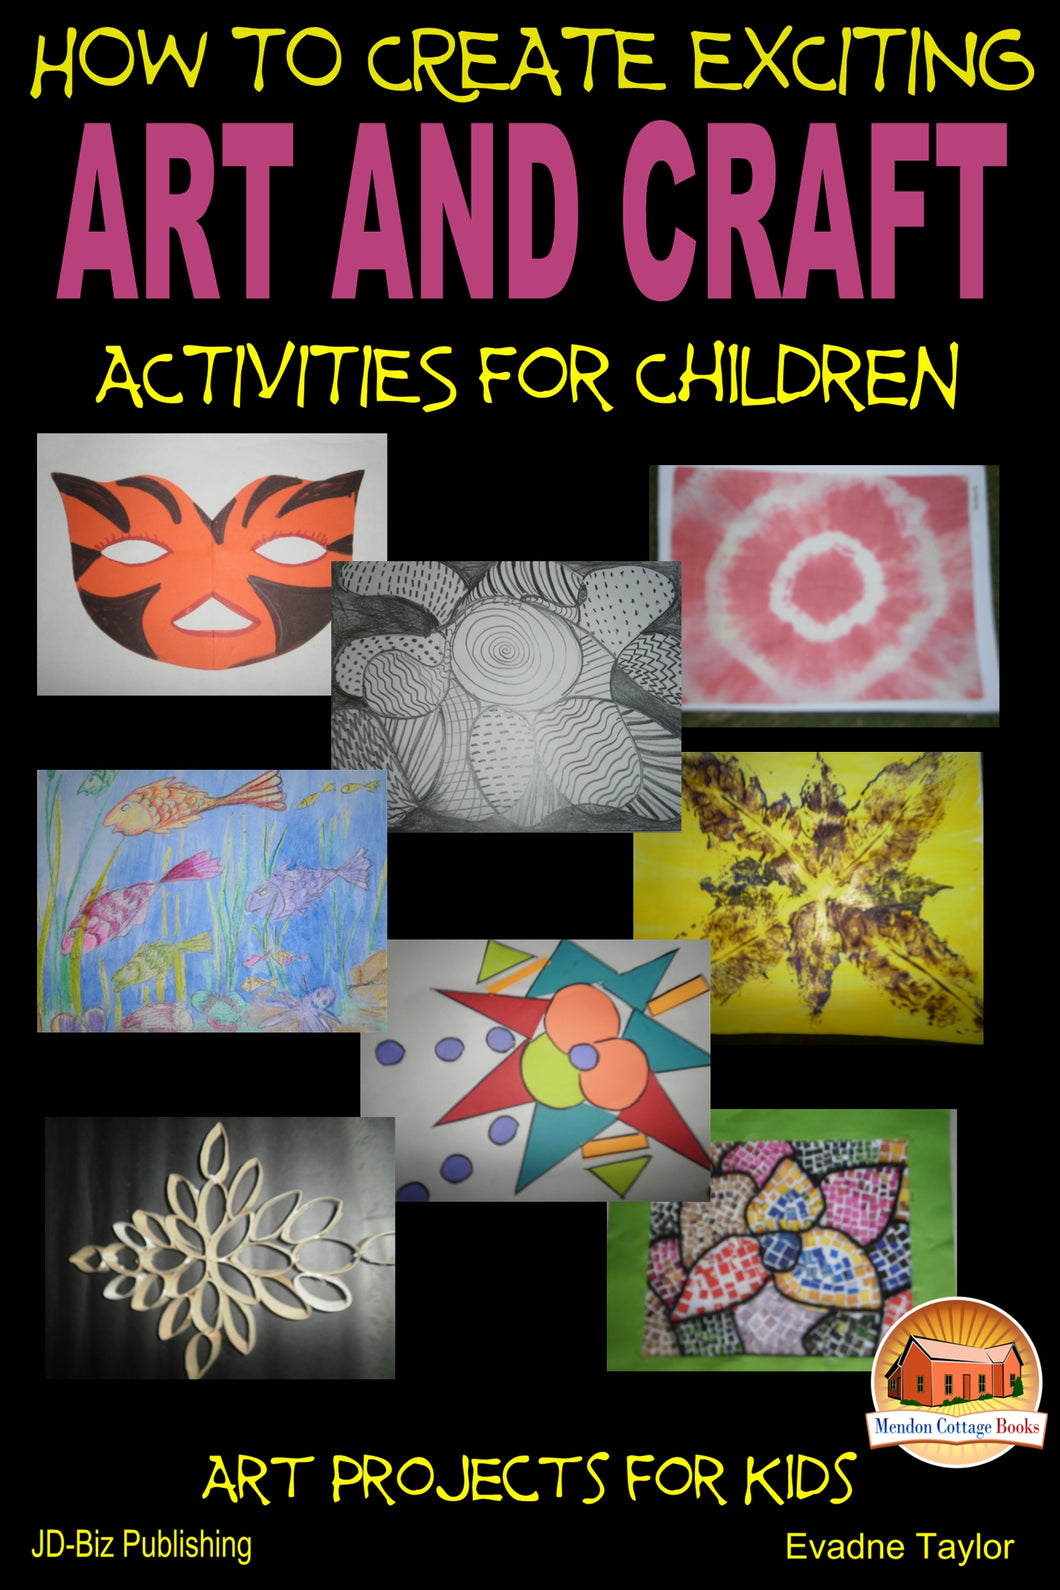 How to Create Exciting Art and Craft Activities for Children